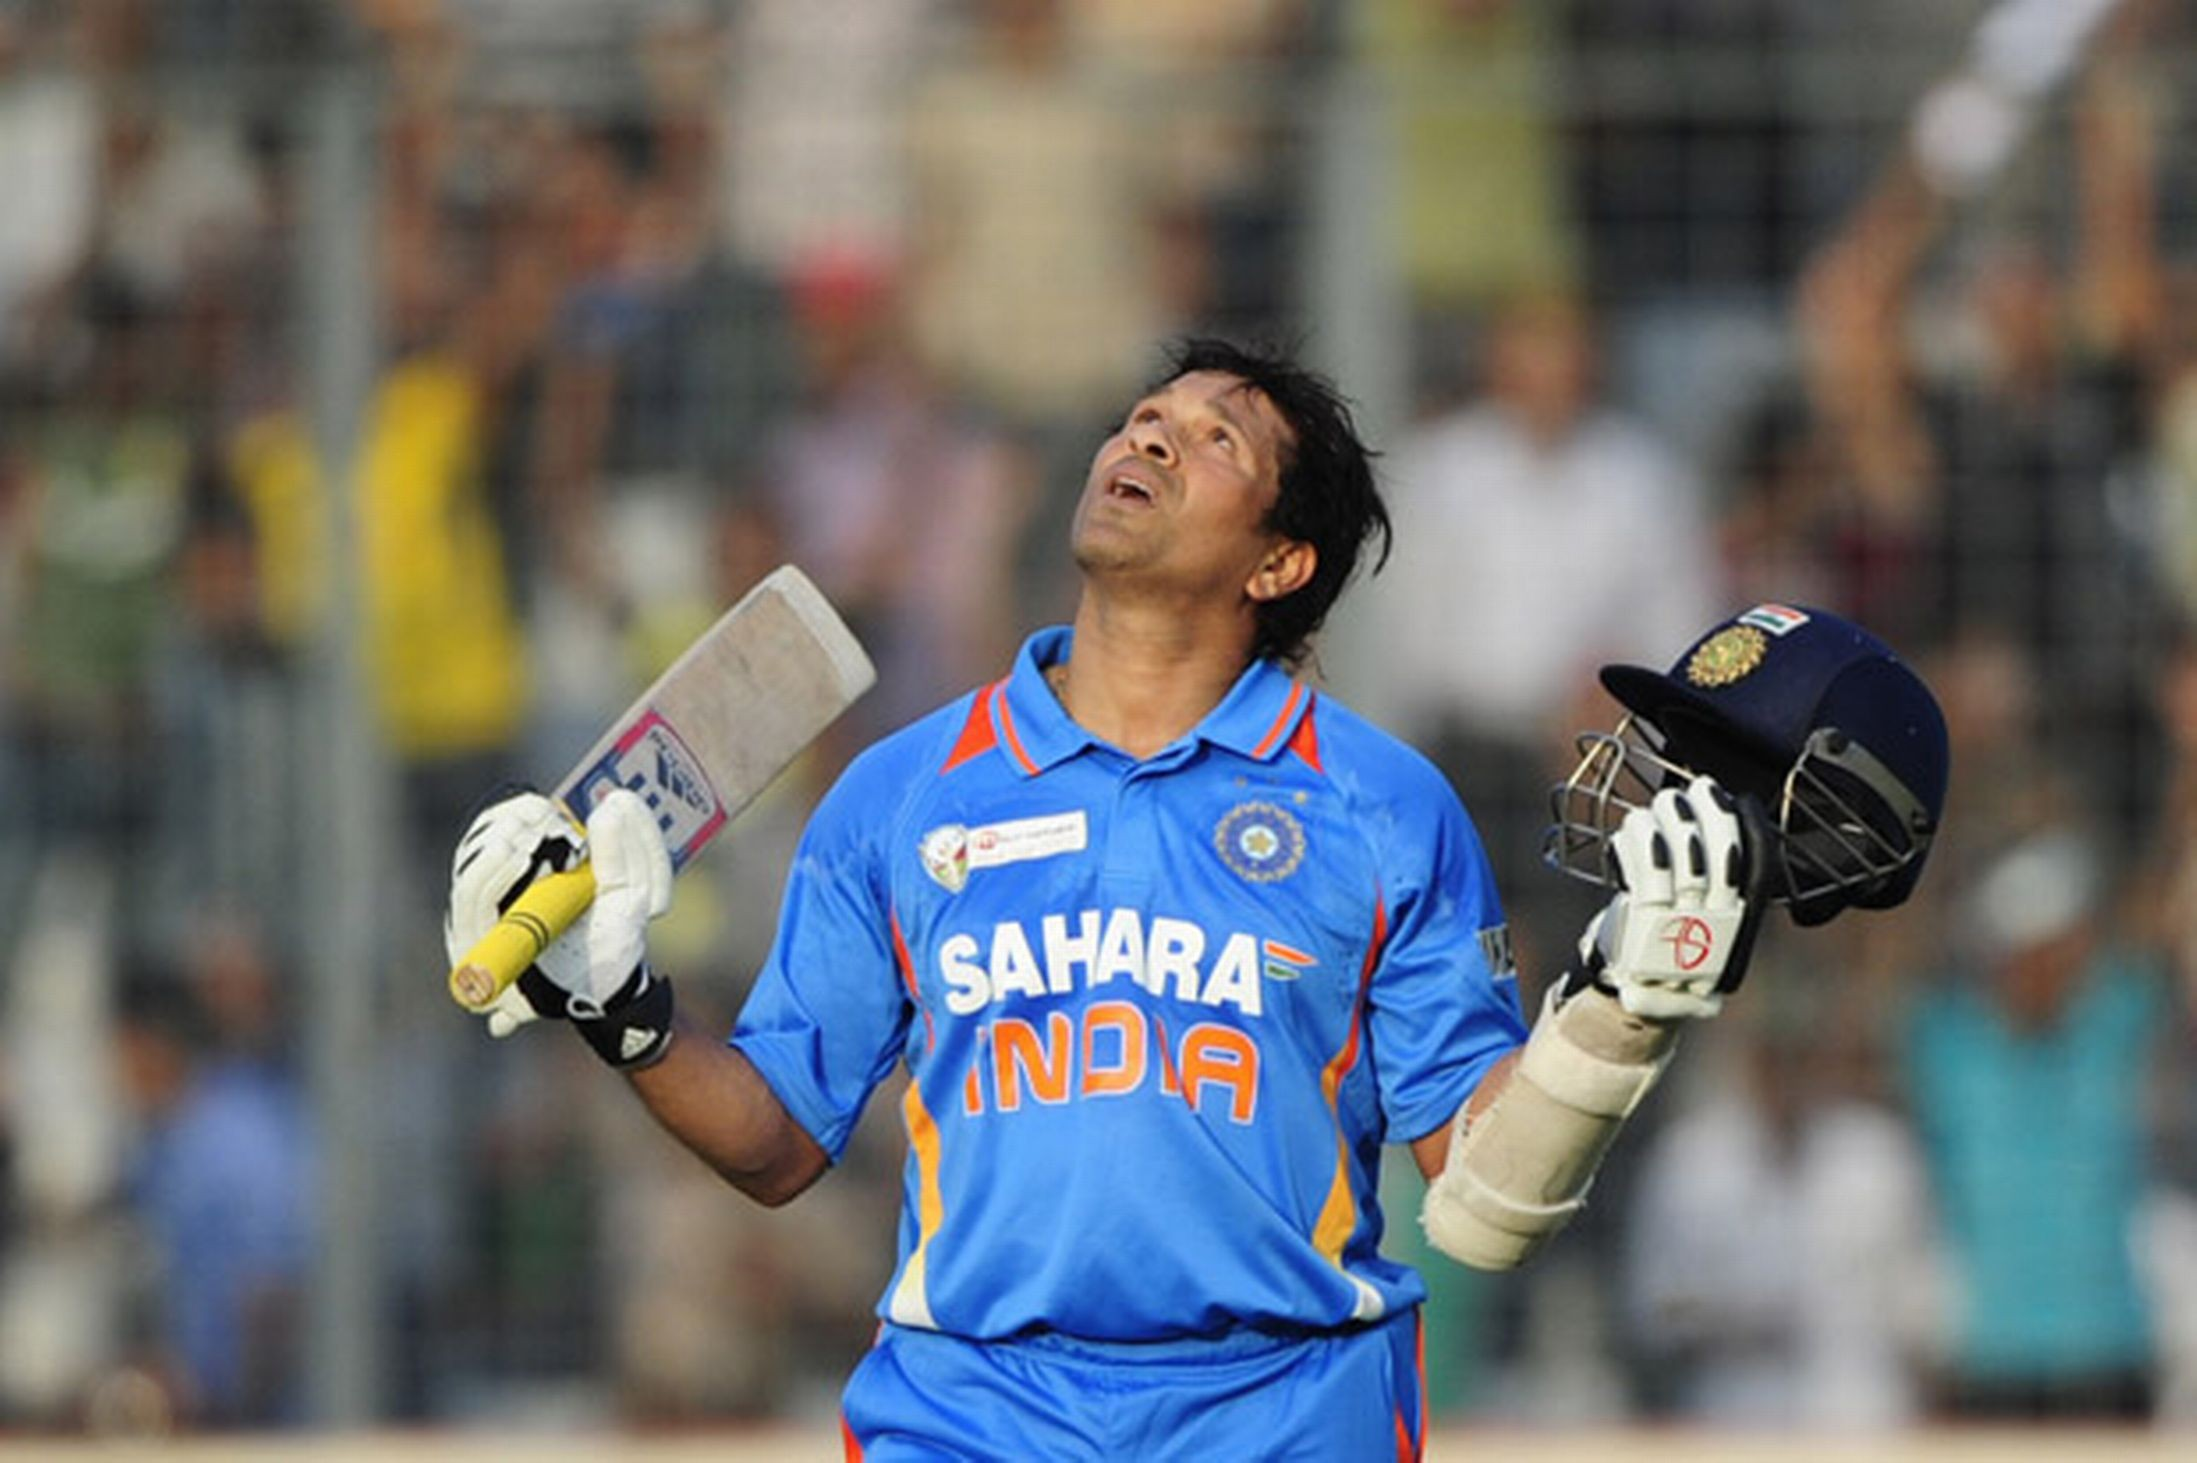 master sachin tendulkar putted century in one day showing hands up